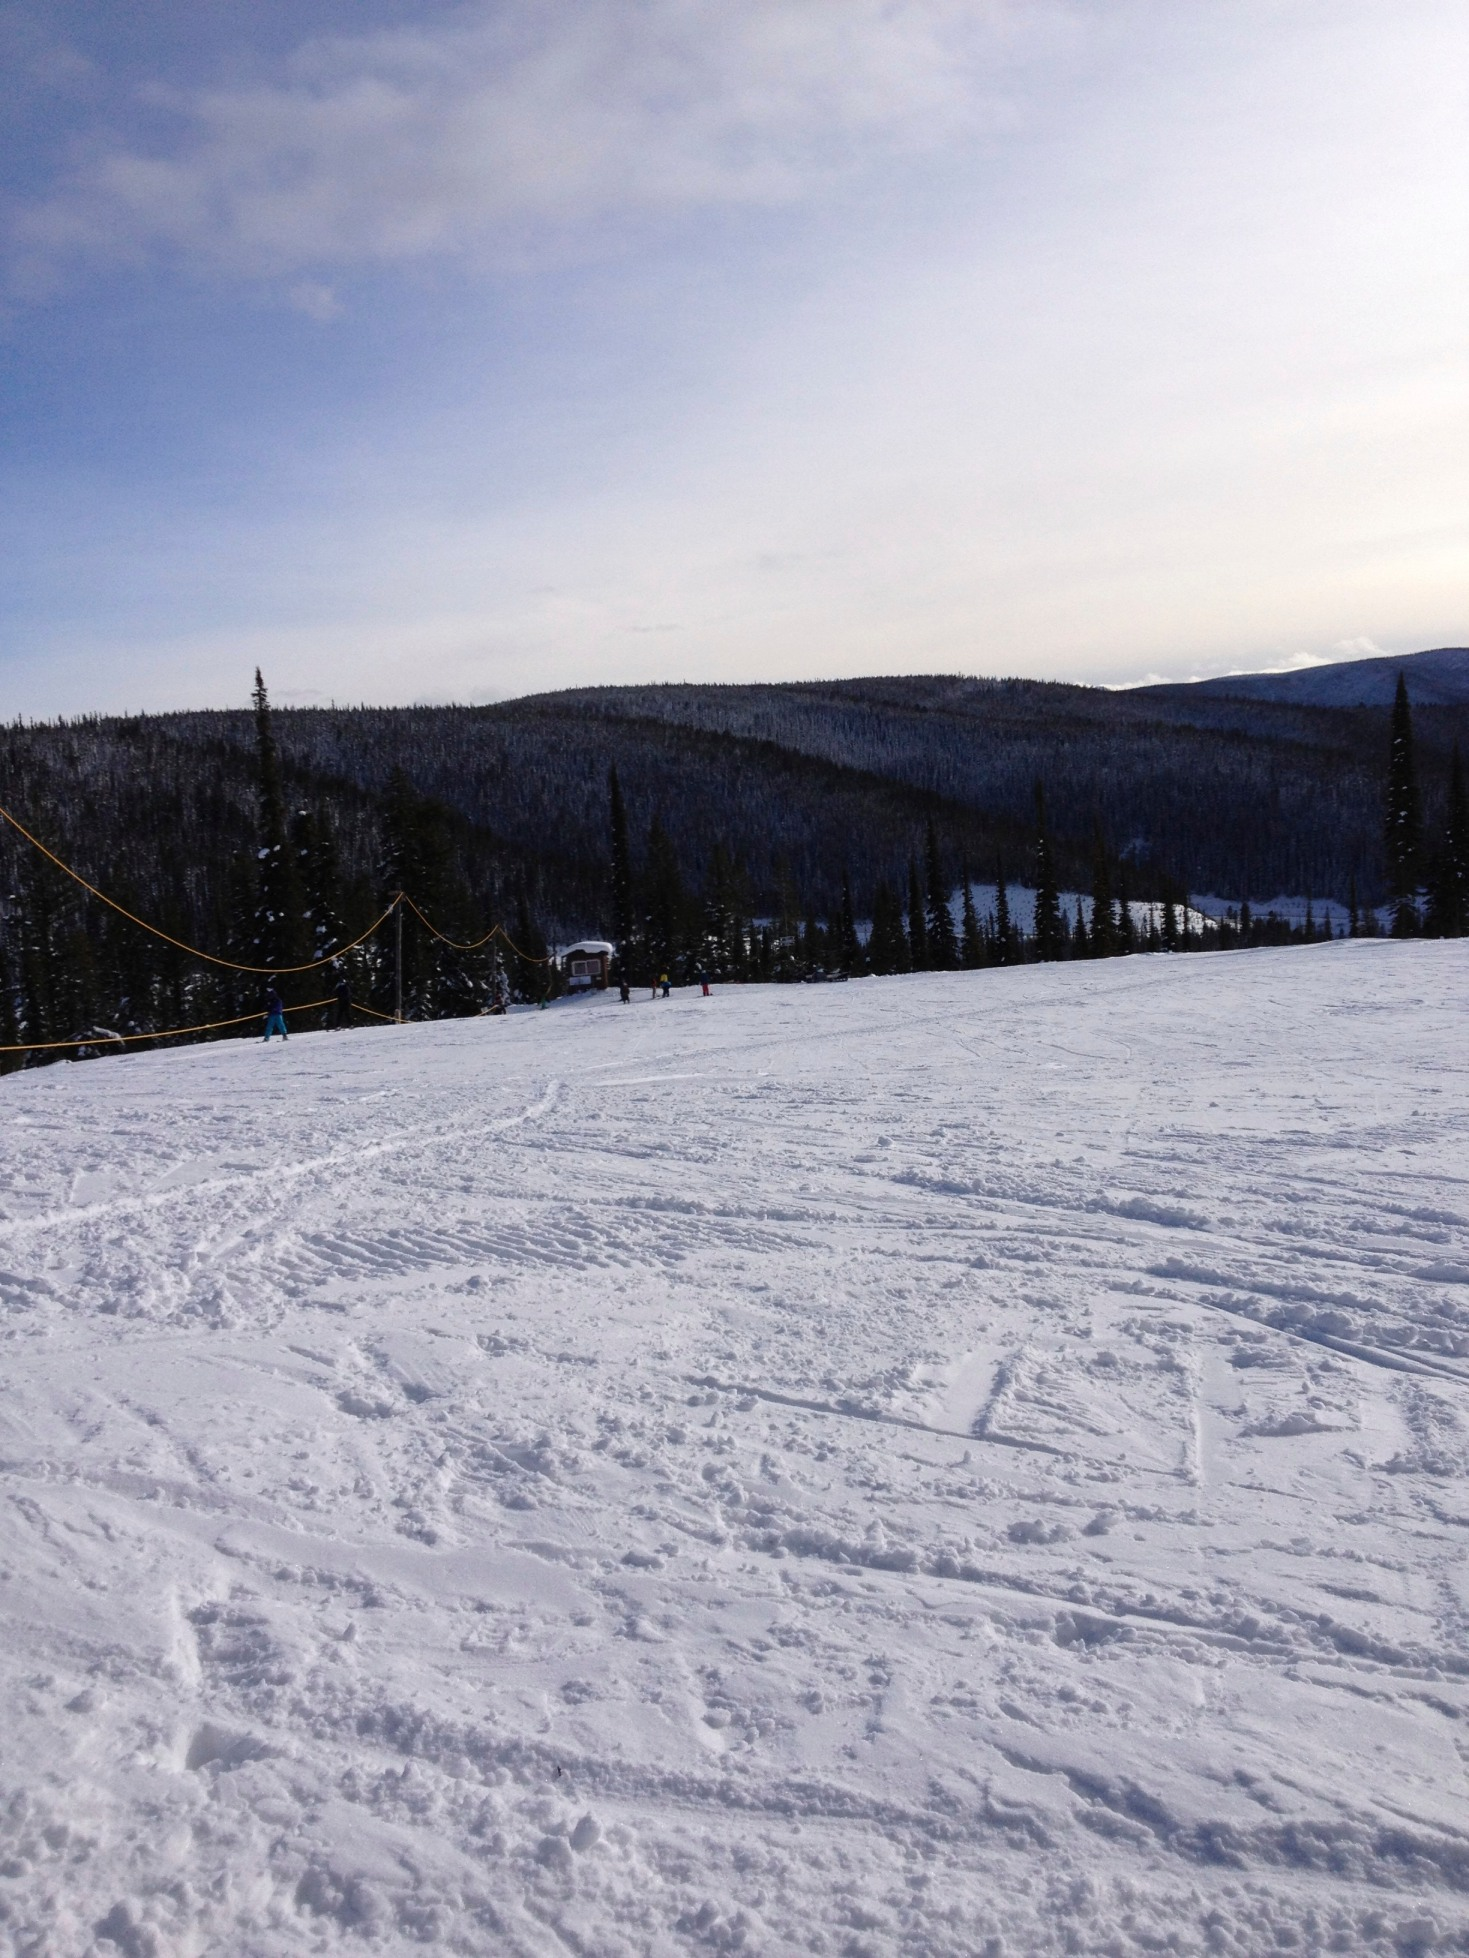 The rope tow at Lost Trail